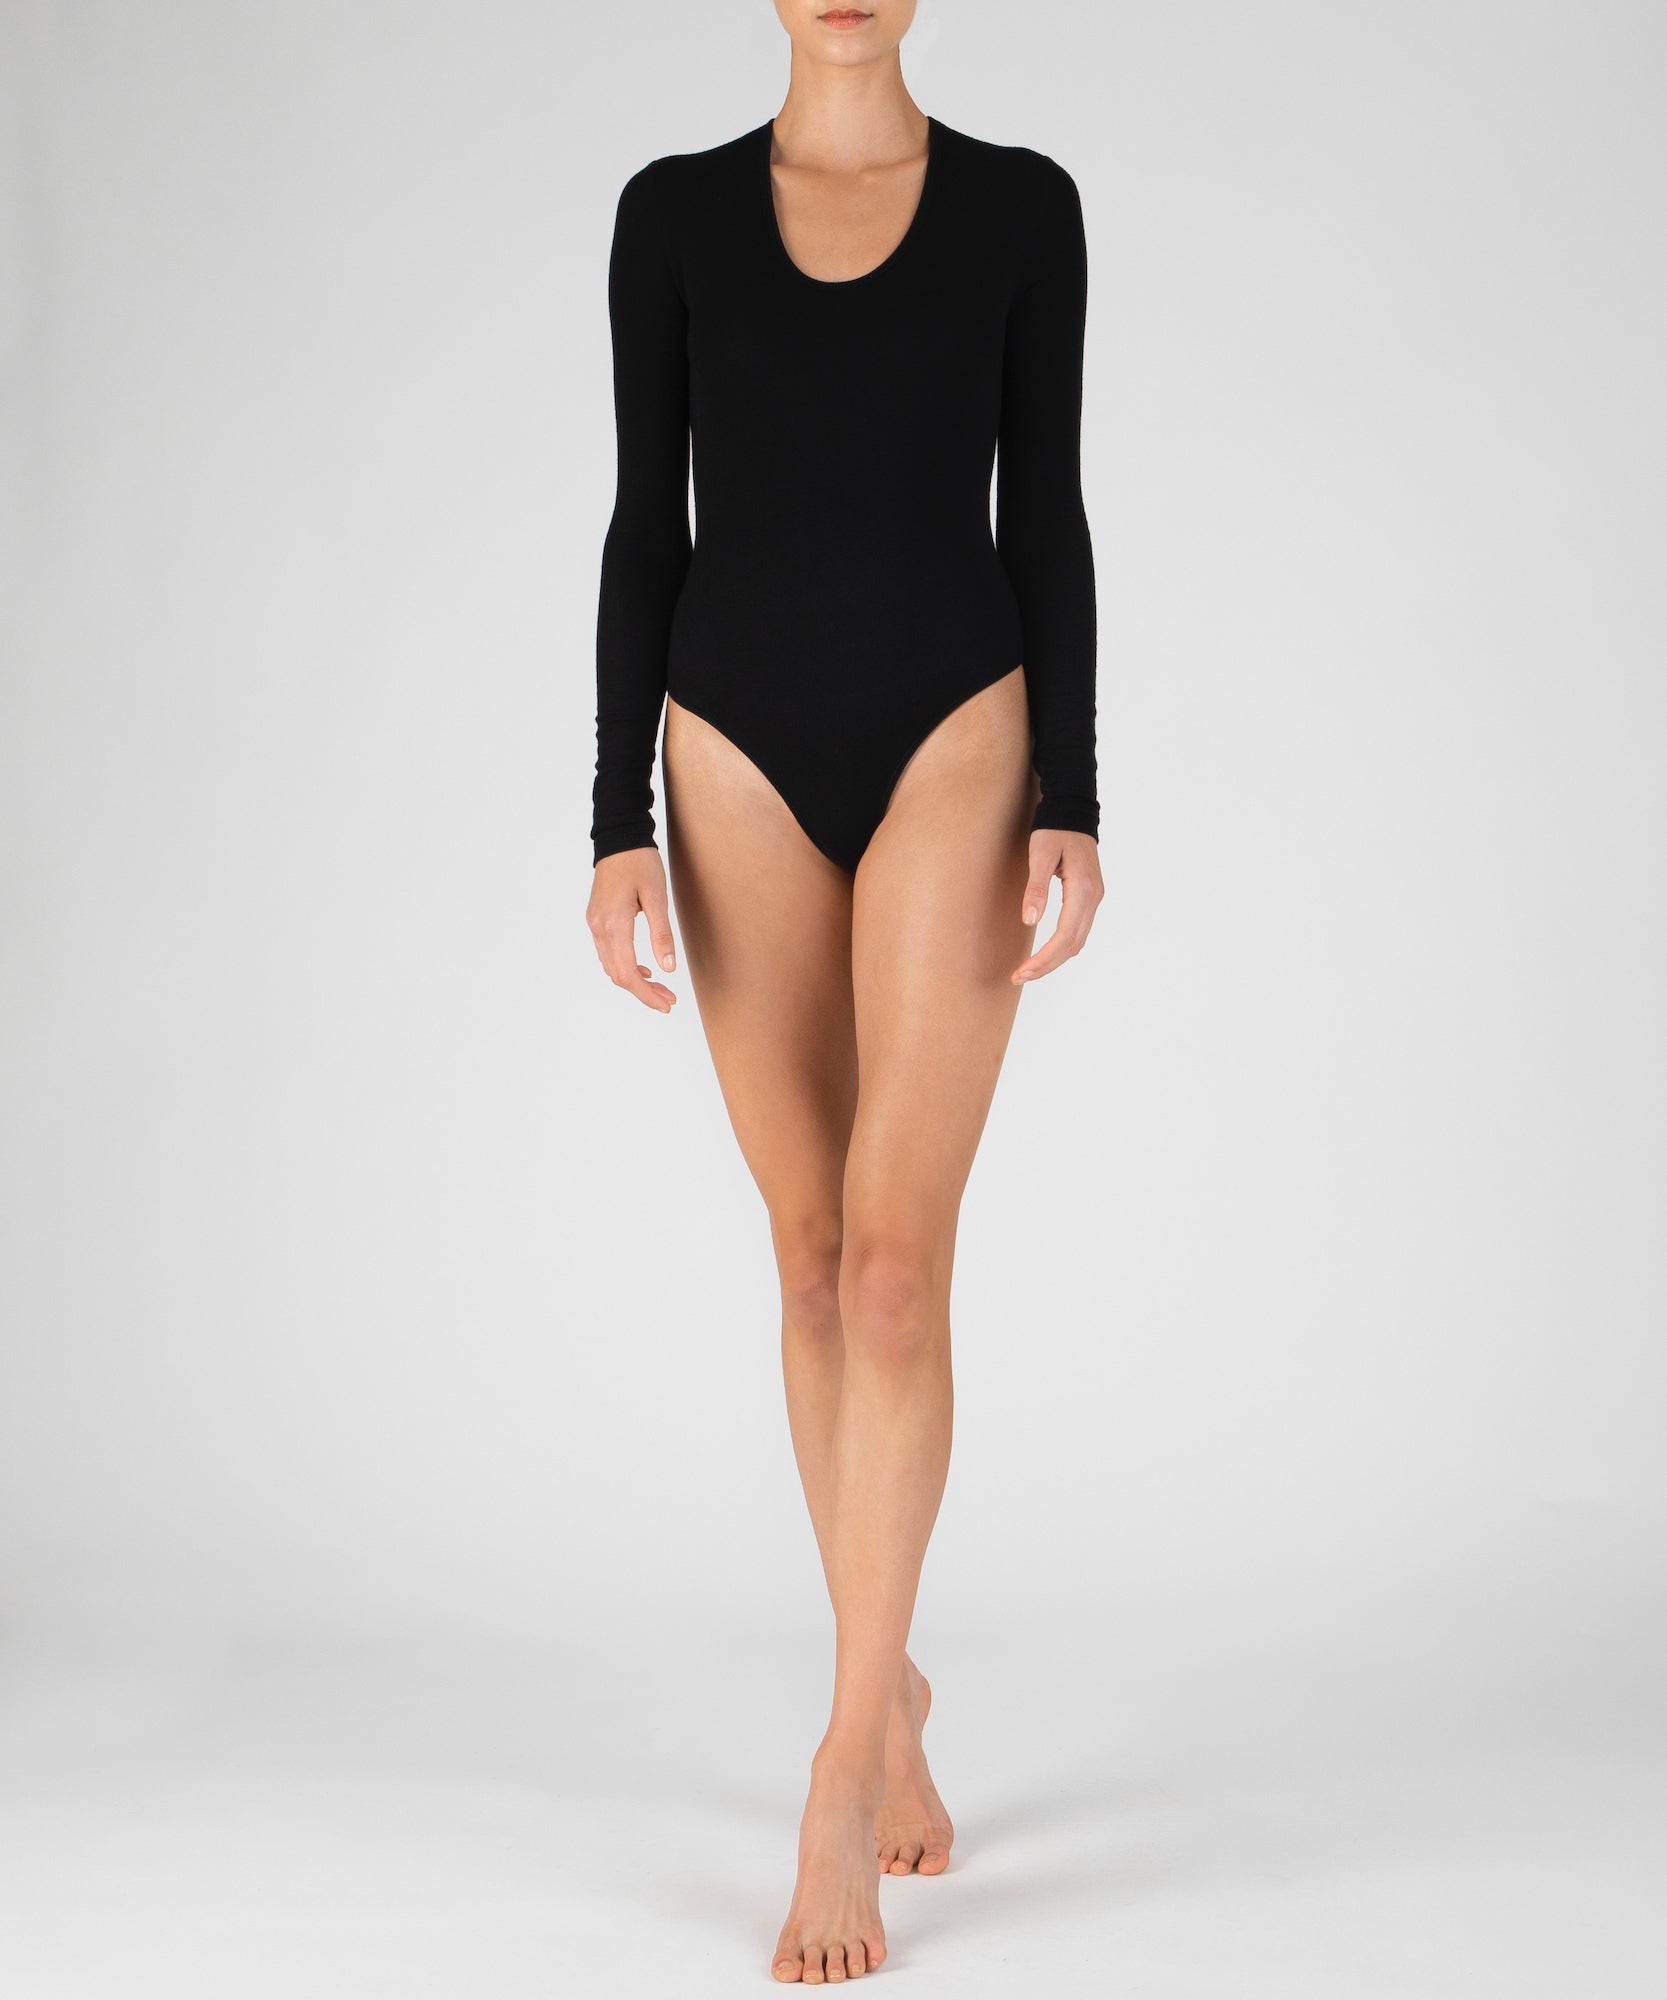 Black Modal Rib U-Neck Bodysuit - Women's Ribbed Bodysuit by ATM Anthony Thomas Melillo